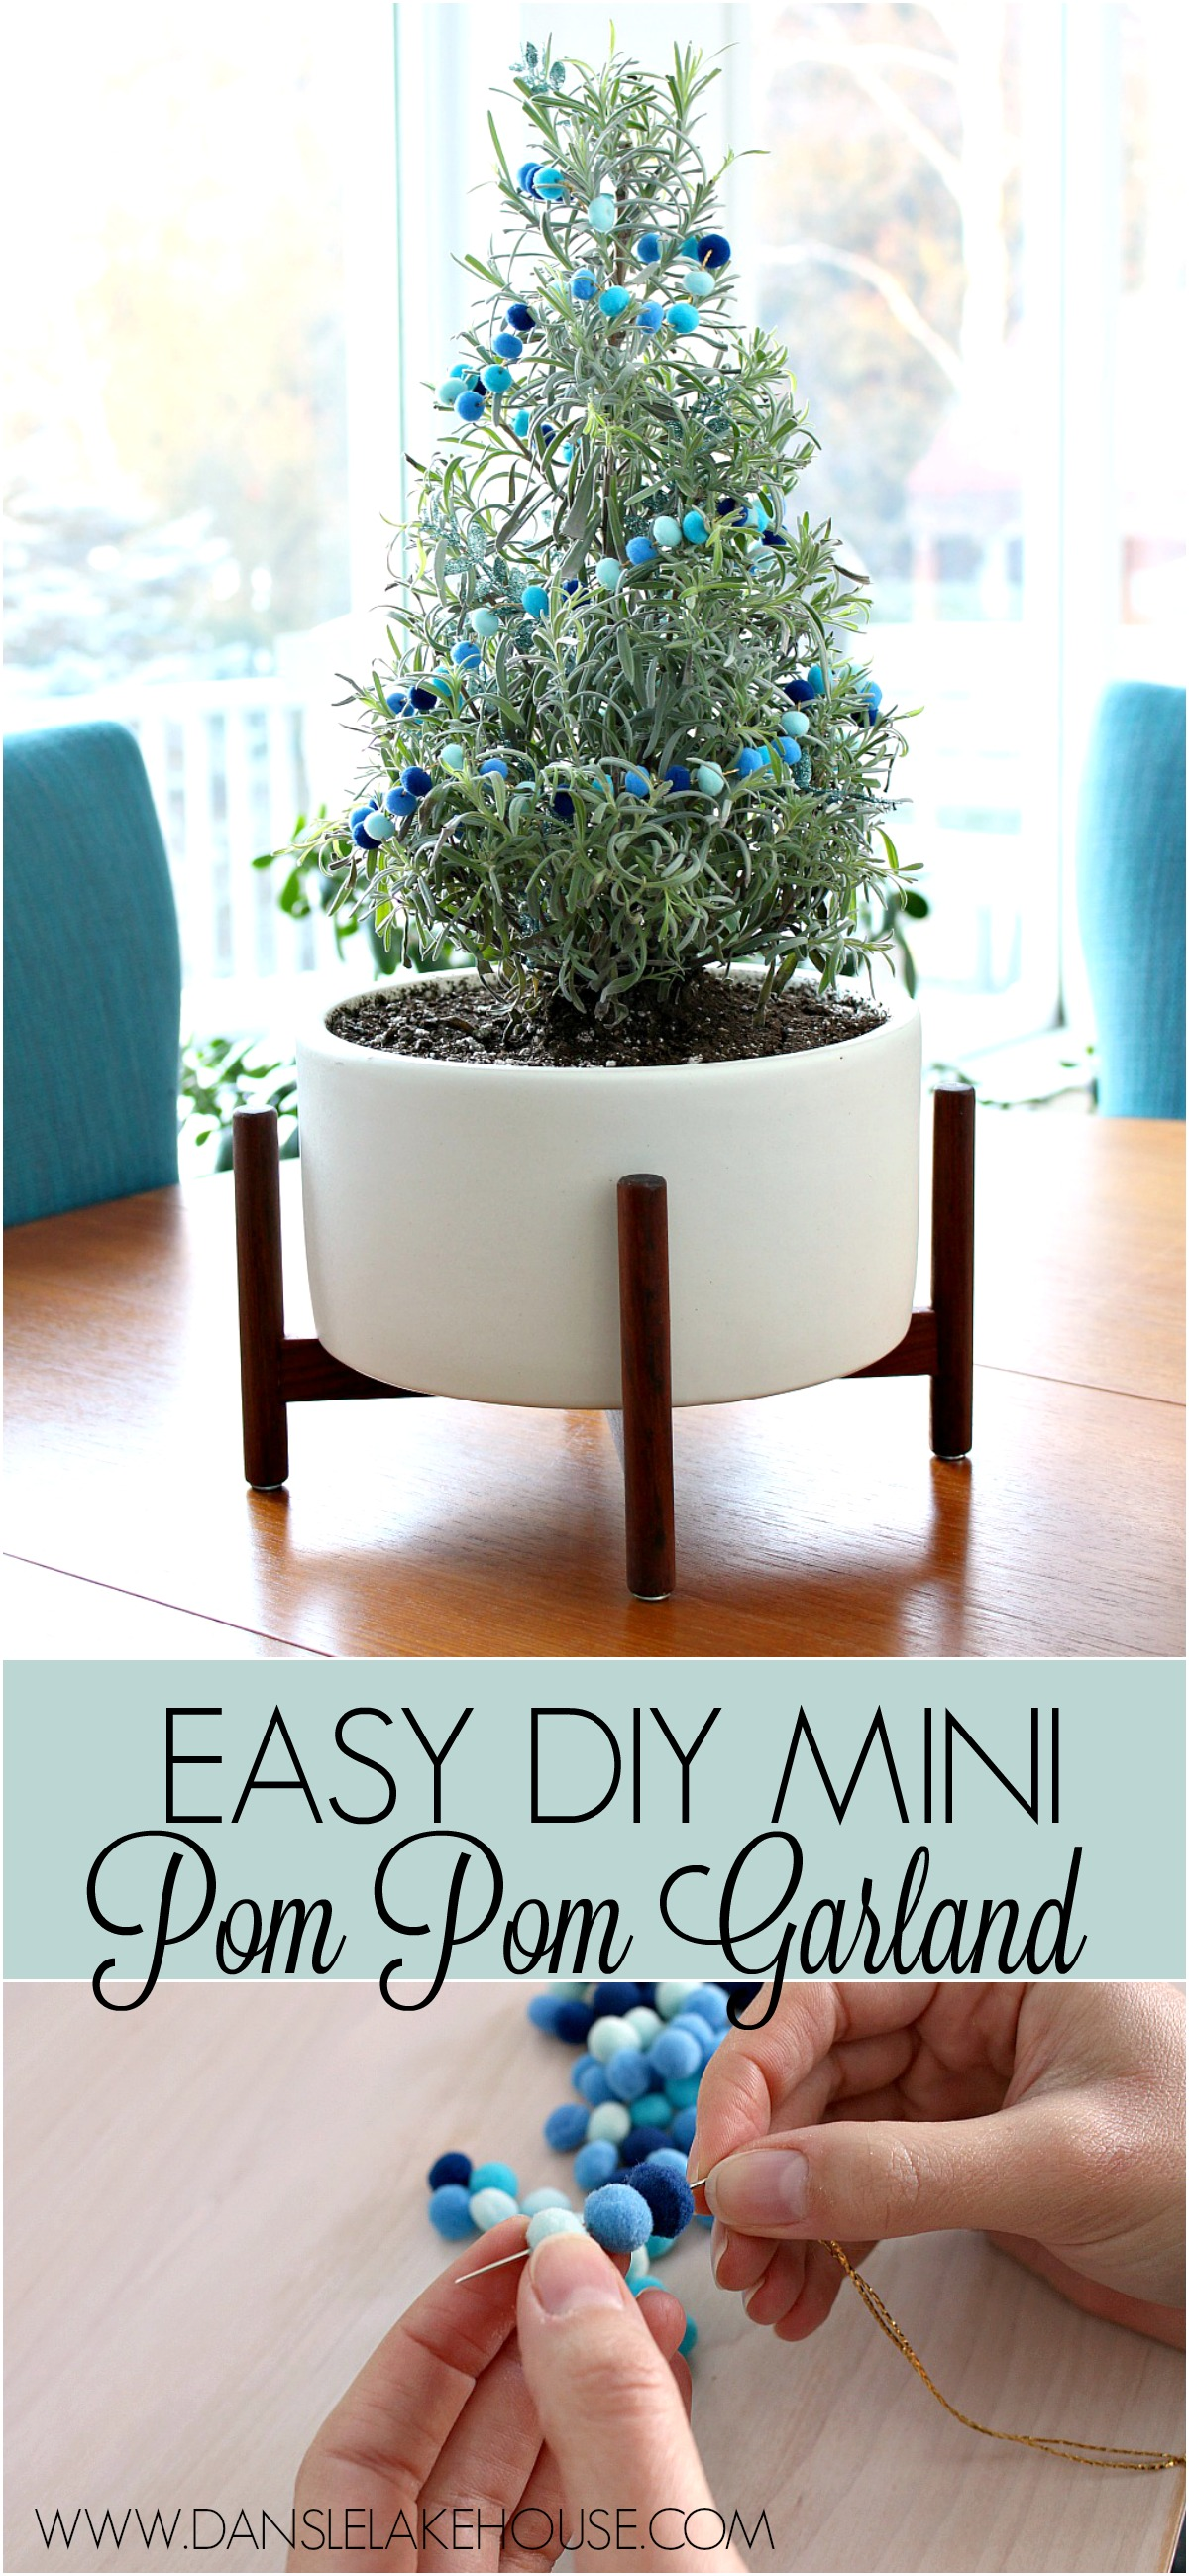 DIY Mini Pom Pom Garland for My Lavender Plant